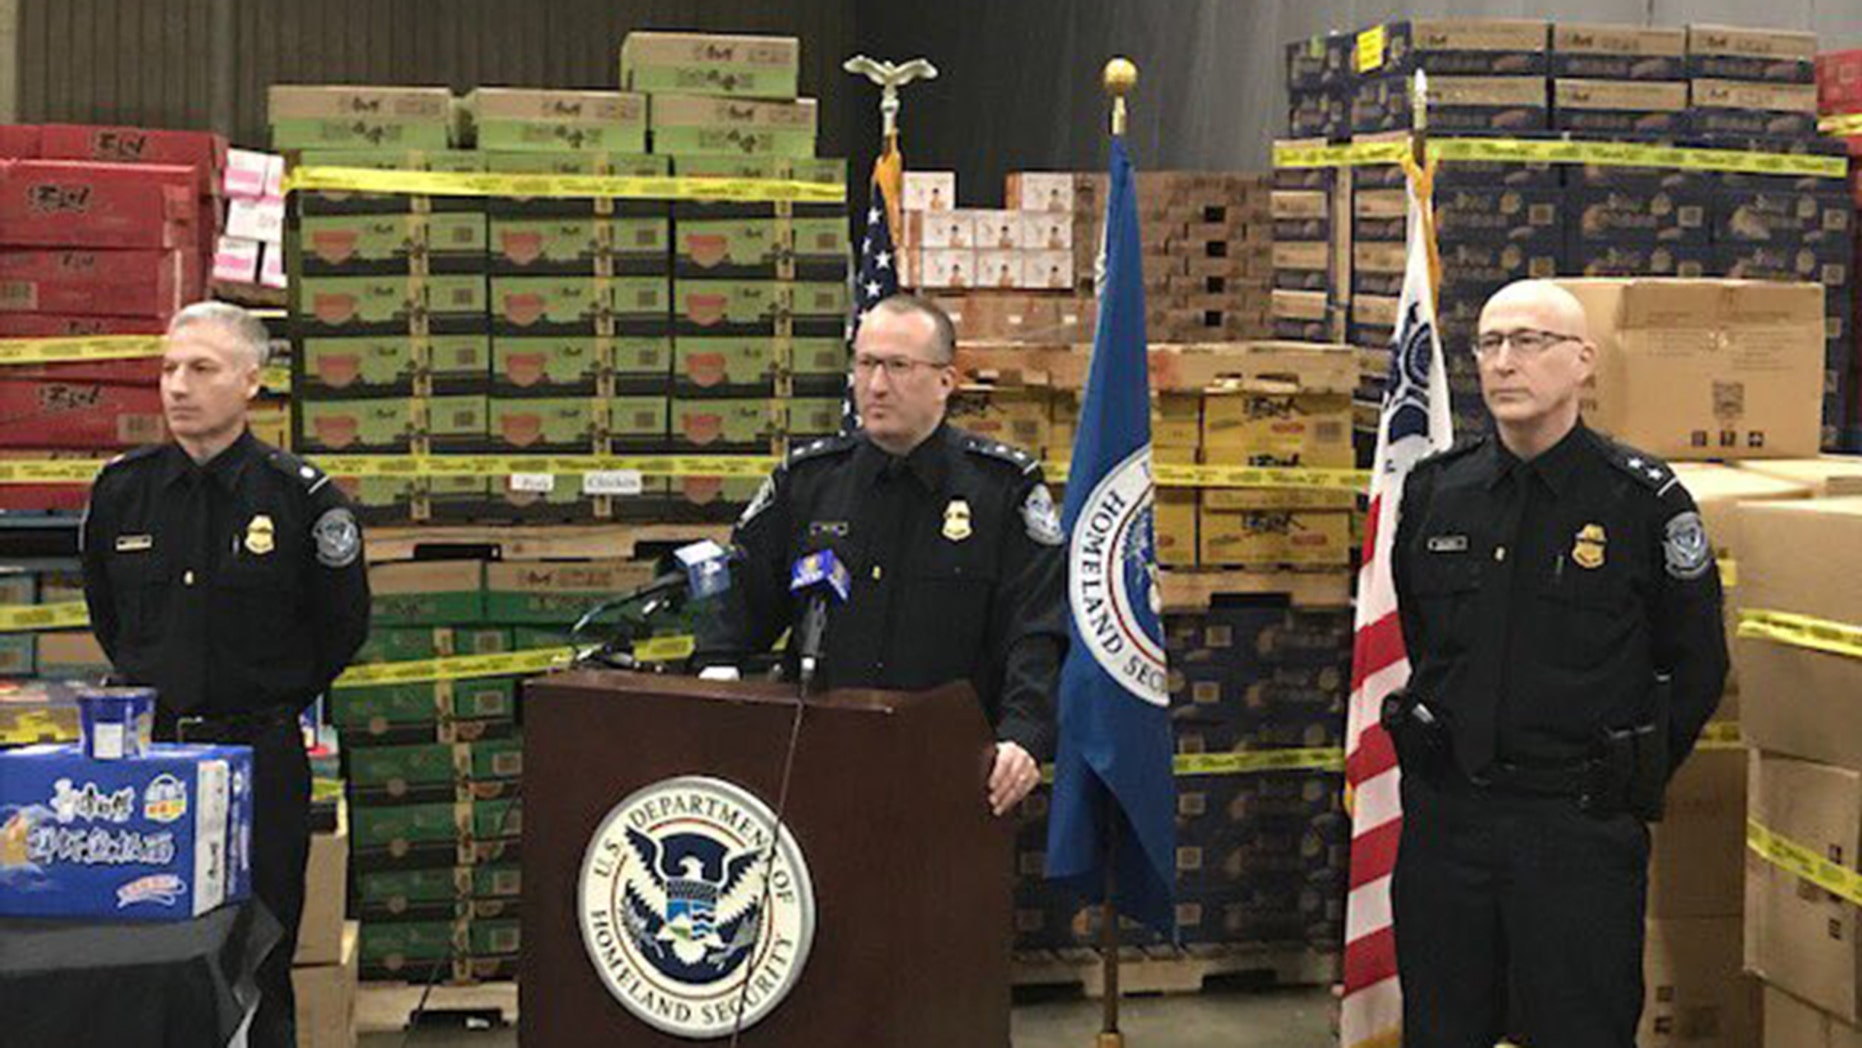 Customs and Border Protection announced the bust of 1 million pounds of illegal pork.